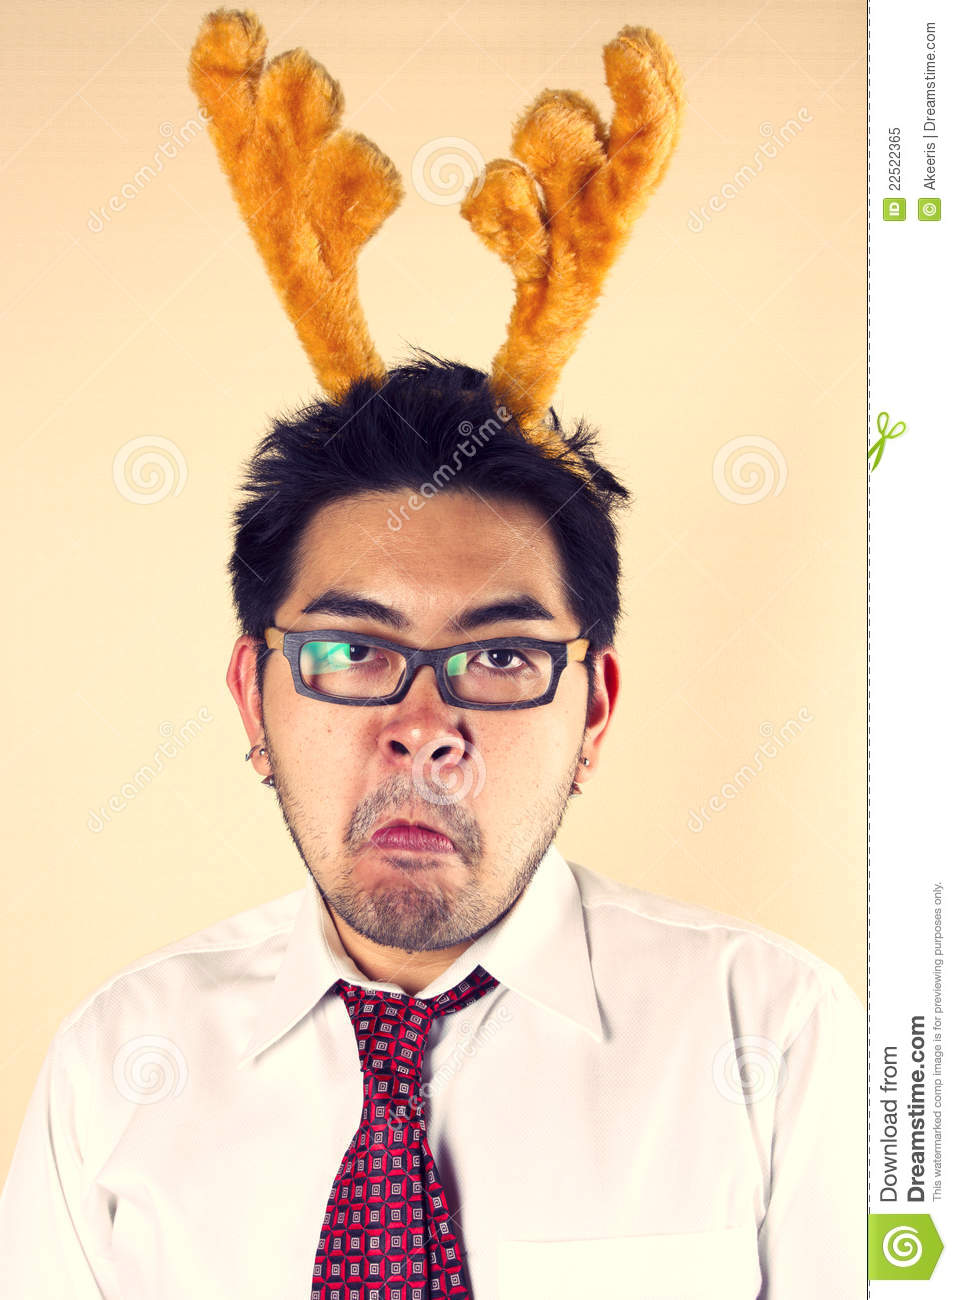 mad reindeer royalty free stock photo image 22522365